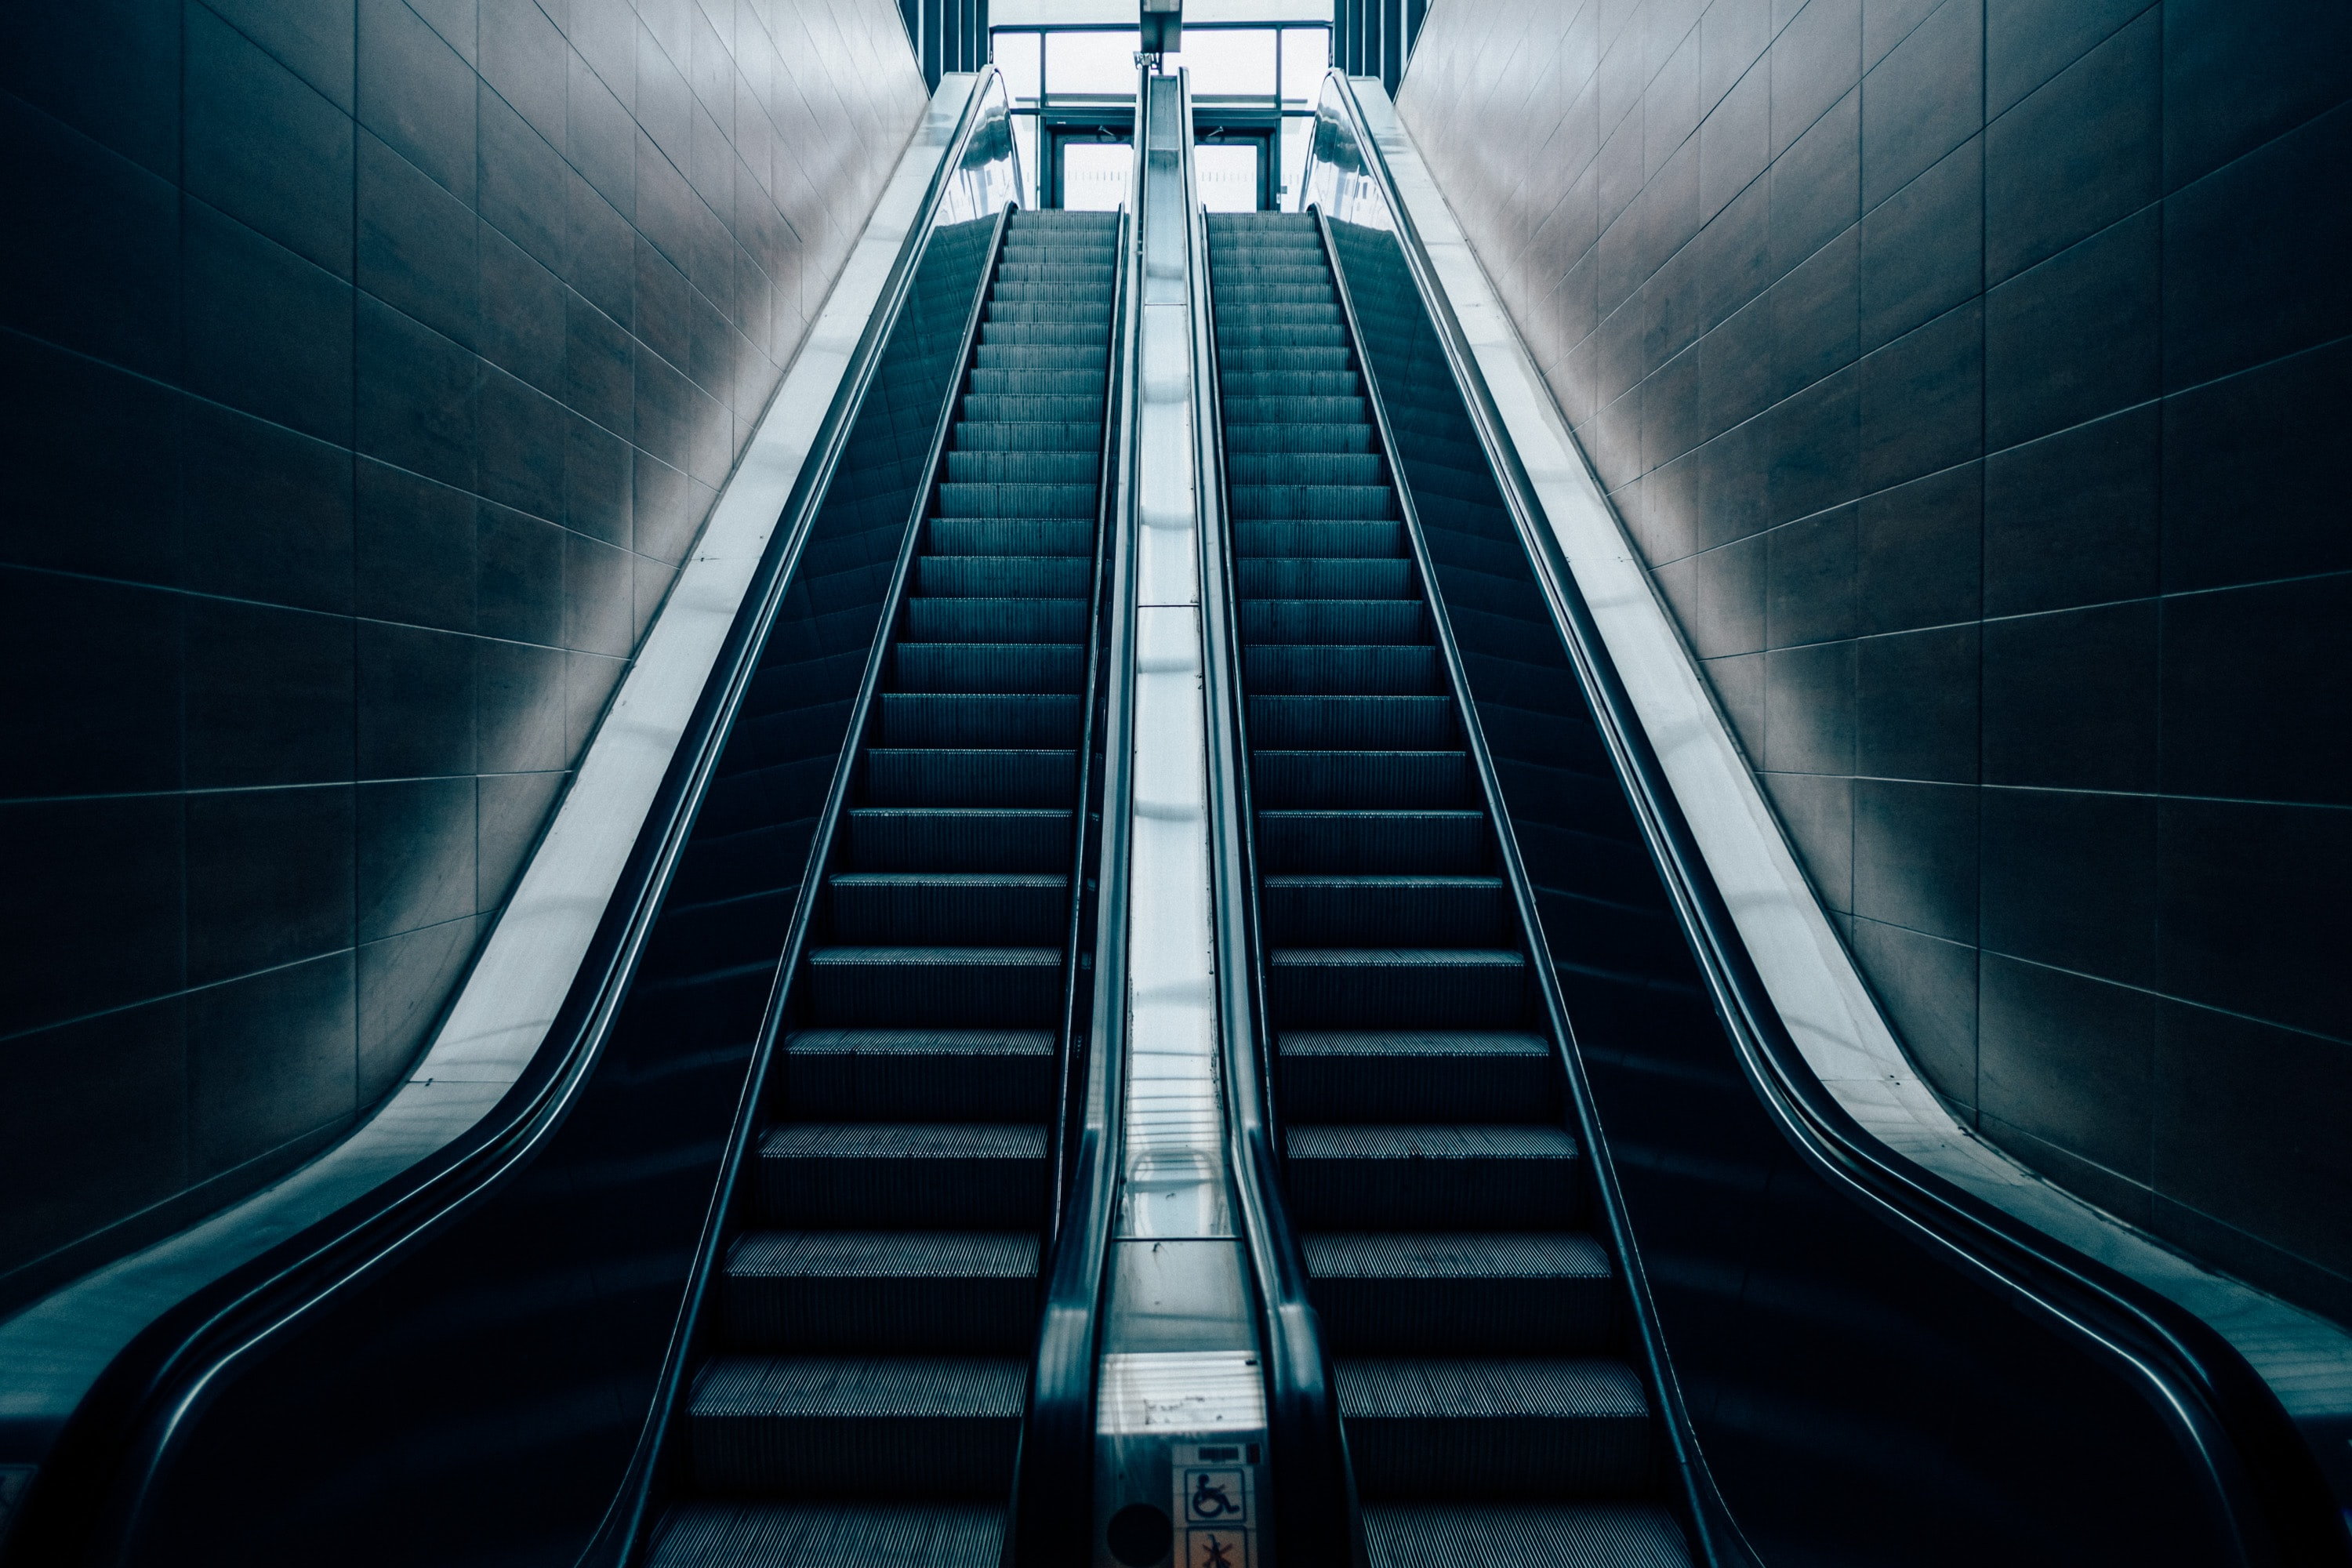 architectural photo of escalator